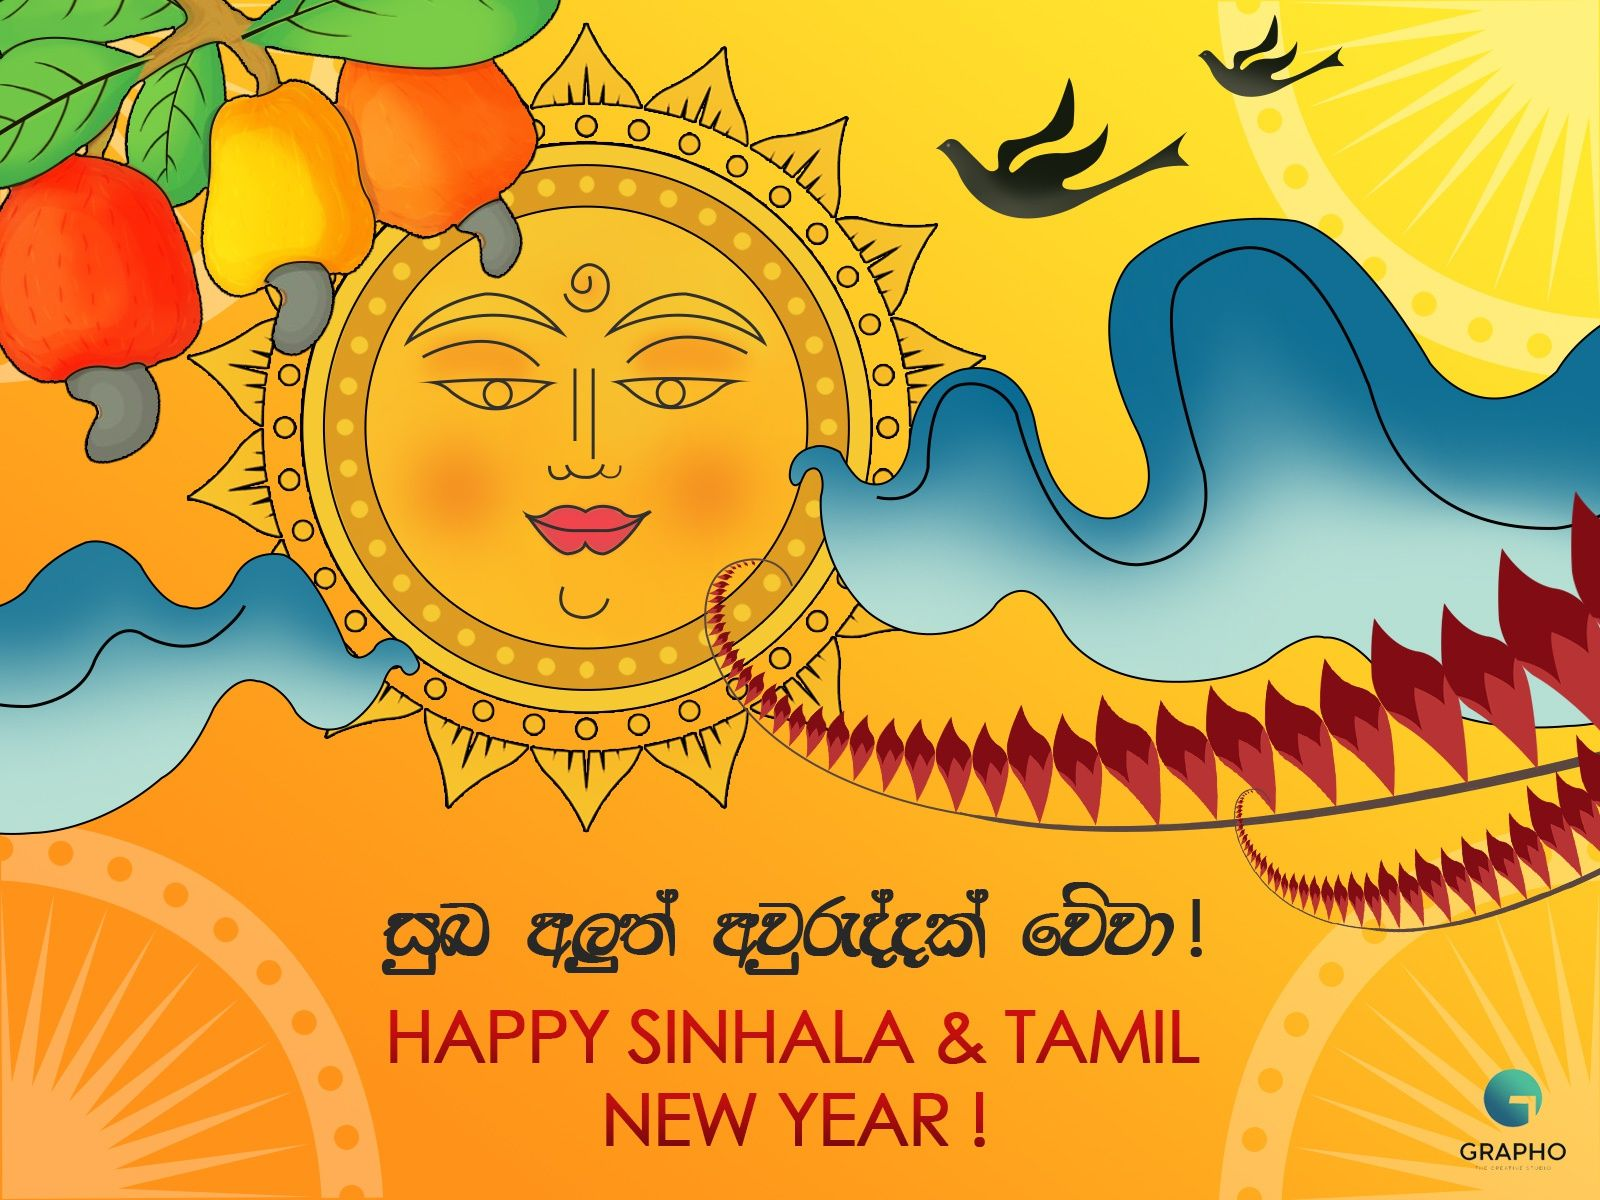 Sinhala and Tamil New Year Wish by Grapho Creative Studio